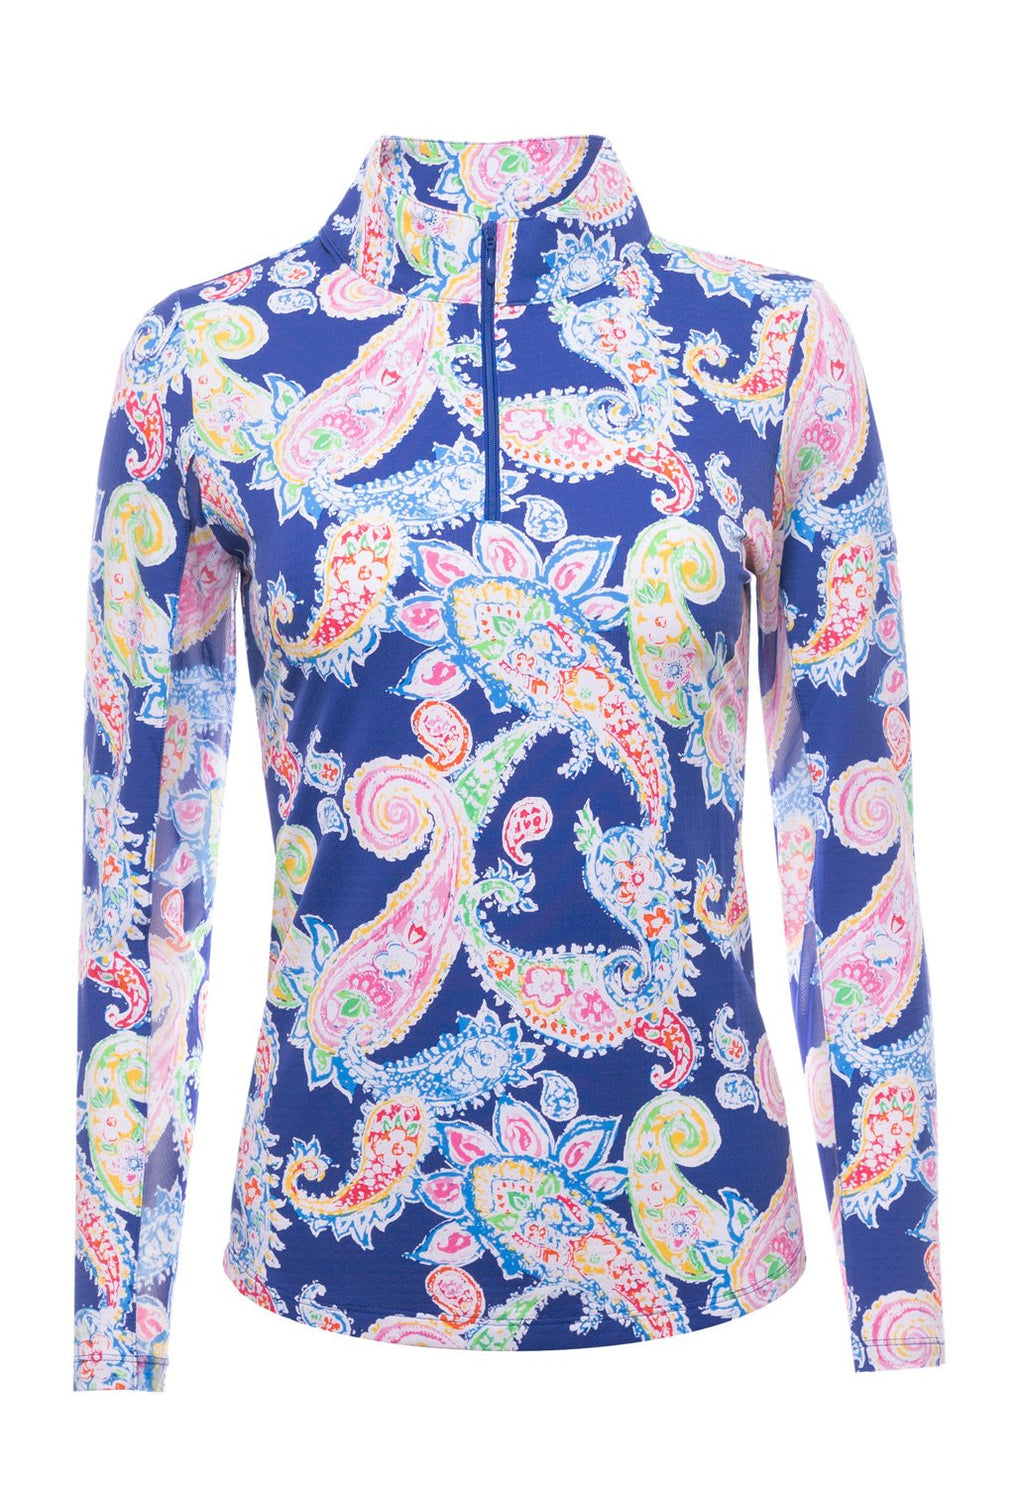 Ibkul Long Sleeve Mock: Sharon Navy Print | SPF 50